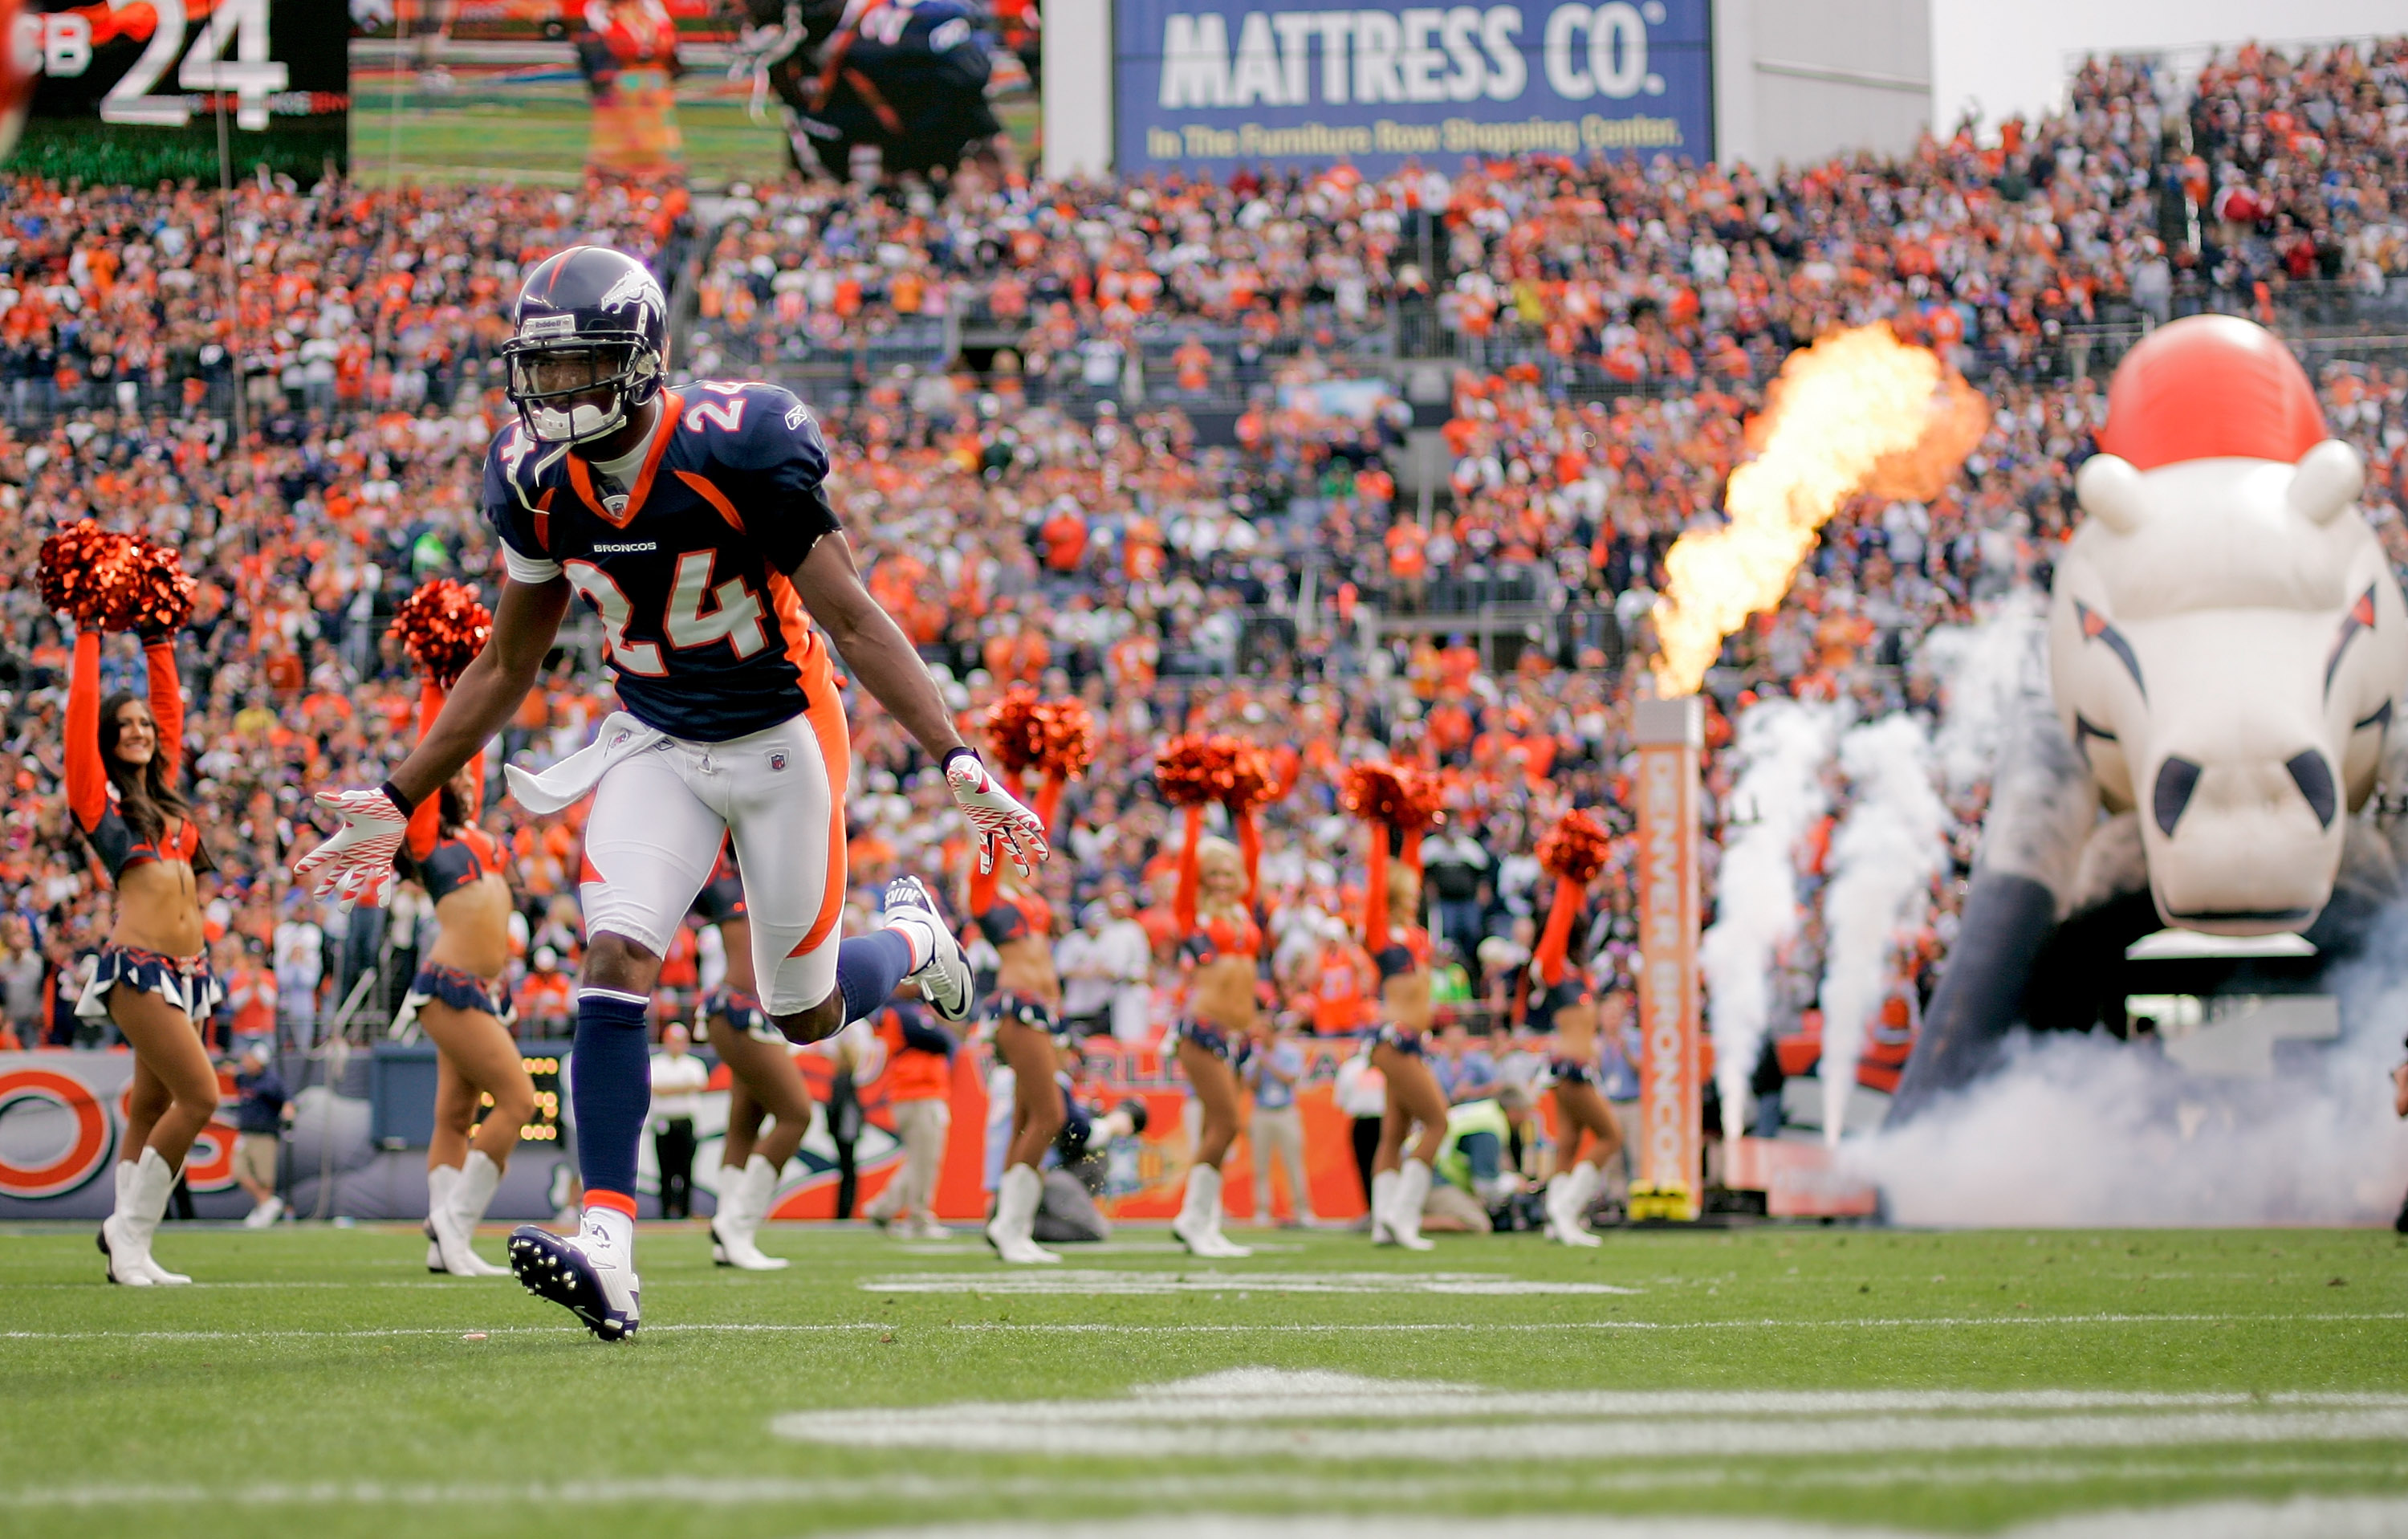 DENVER - OCTOBER 24:  Cornerback Champ Bailey #24 of the Denver Broncos runs onto the field before taking on the Oakland Raiders at INVESCO Field at Mile High on October 24, 2010 in Denver, Colorado. (Photo by Justin Edmonds/Getty Images)